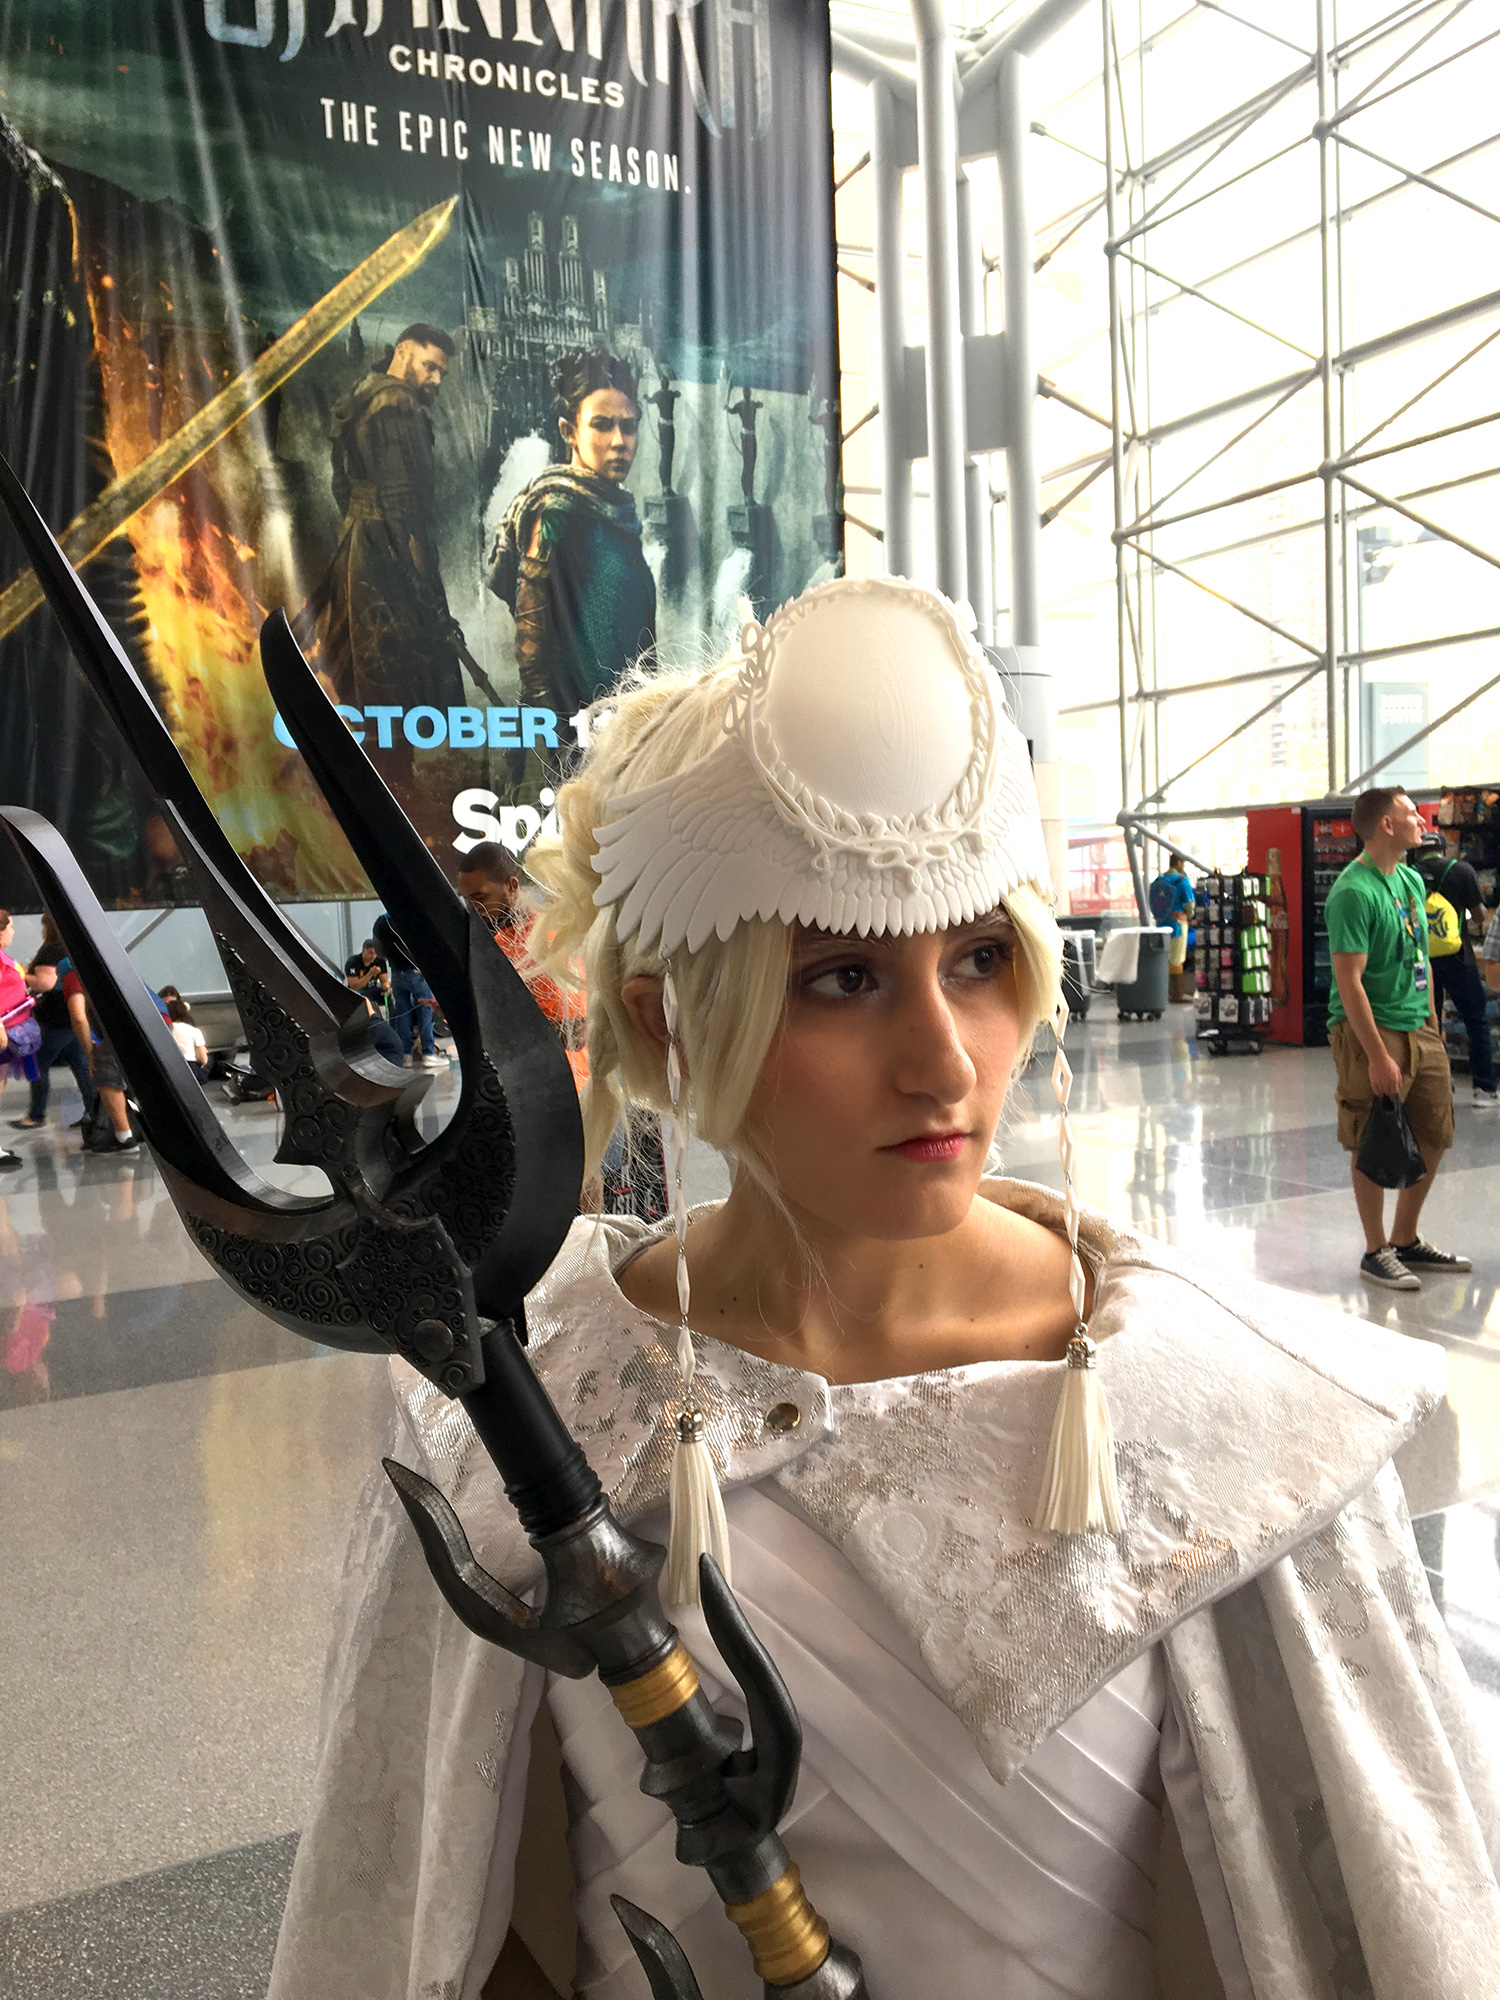 Sarah Awad as Luna from Final Fantasy XV